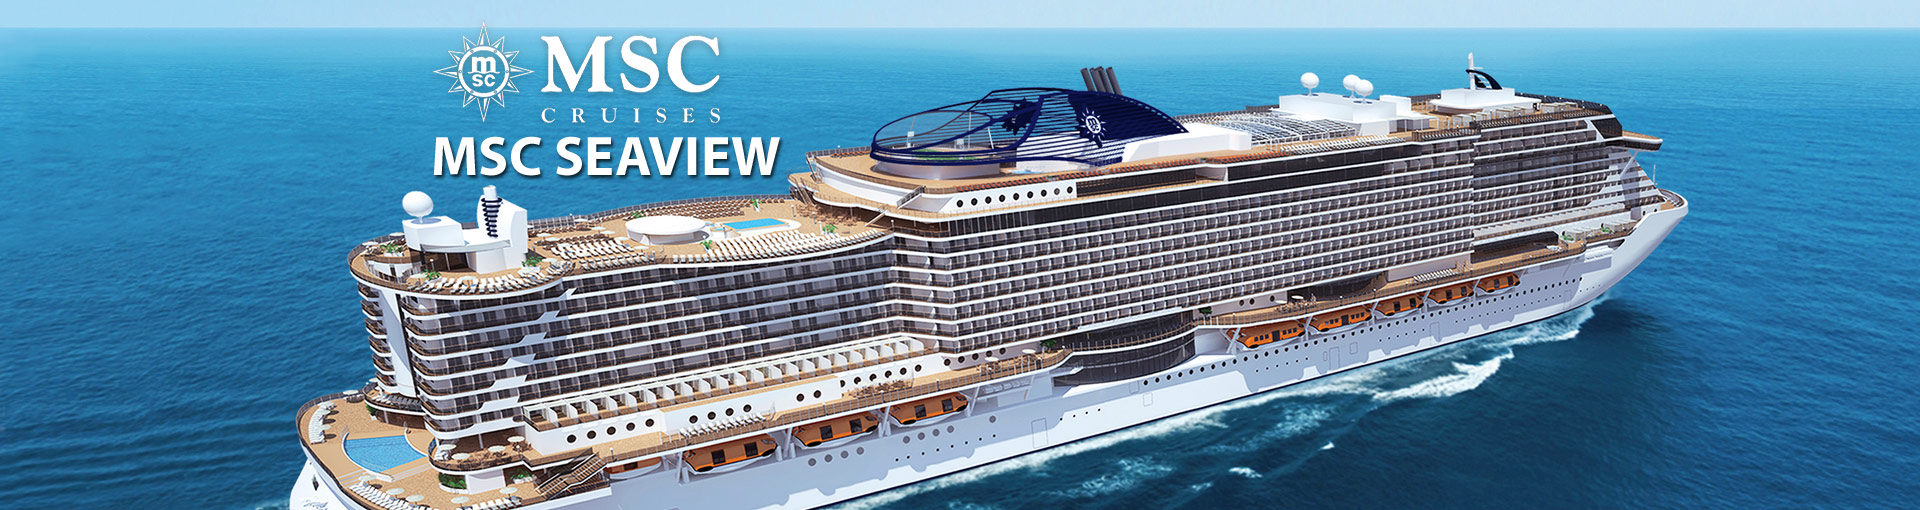 MSC Cruises Seaview Cruise Ship